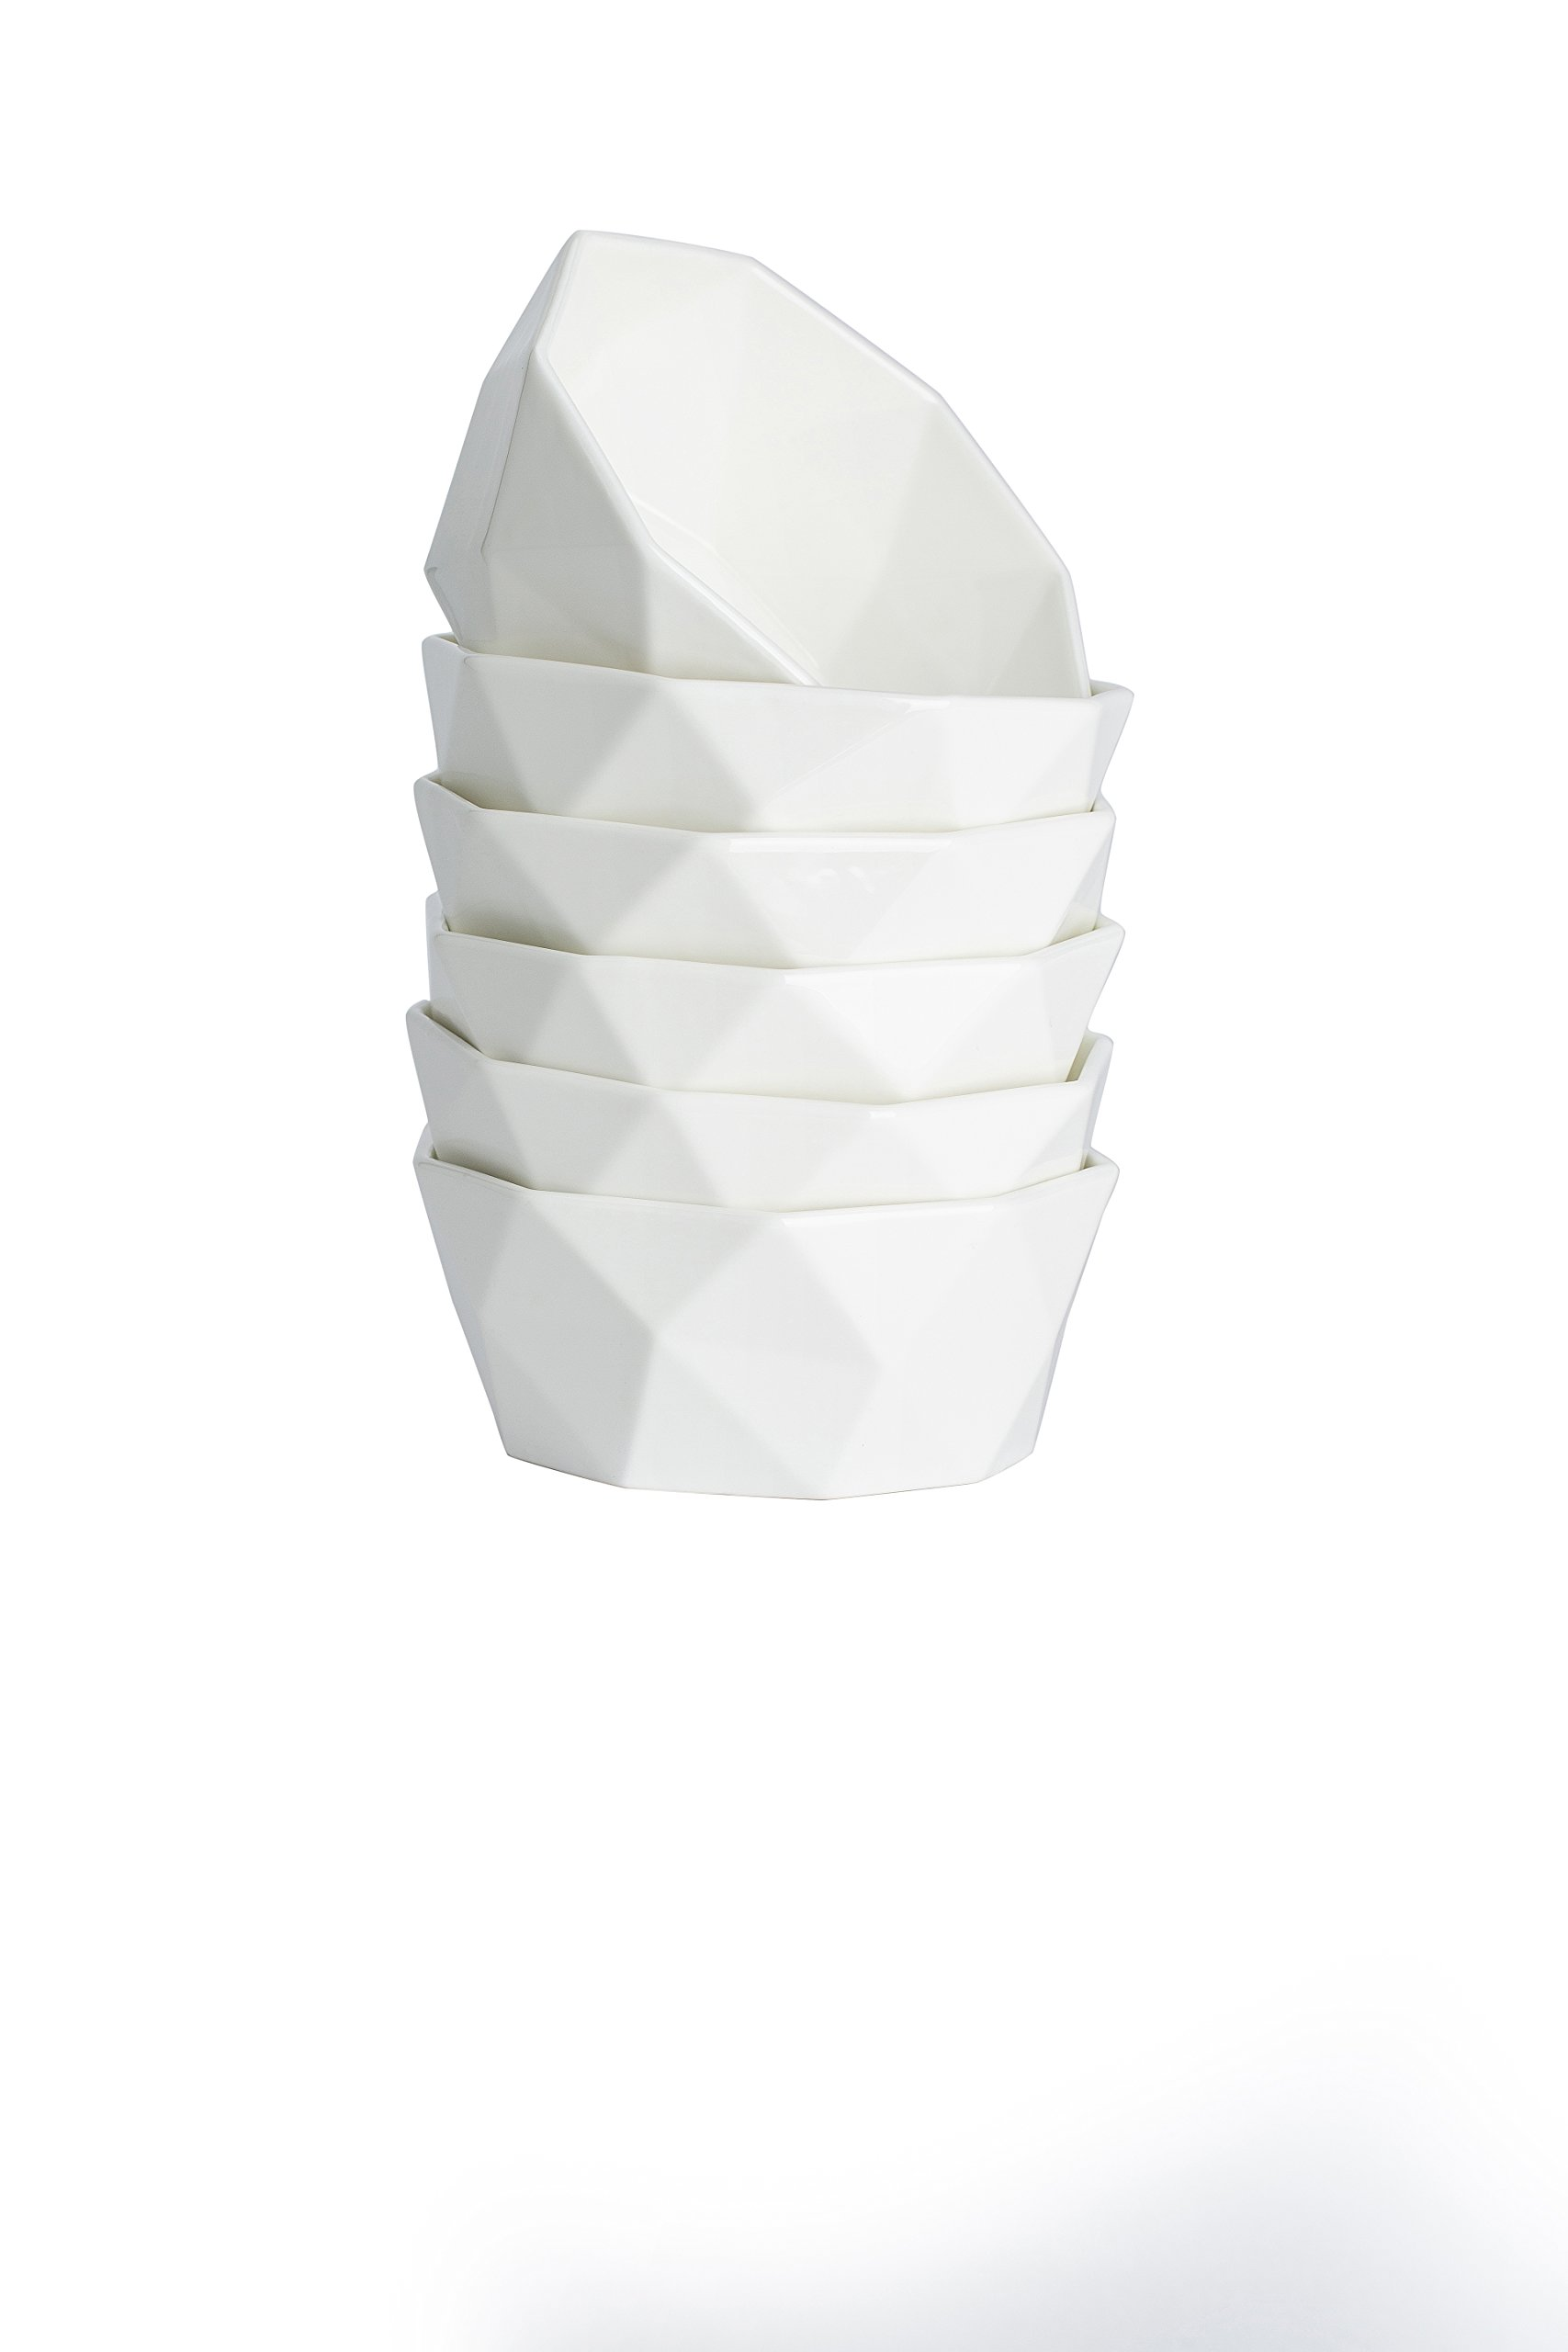 20-Ounce Porcelain Bowl Set for Cereal, Salad and Desserts, Set of 6,White,by HITFUN